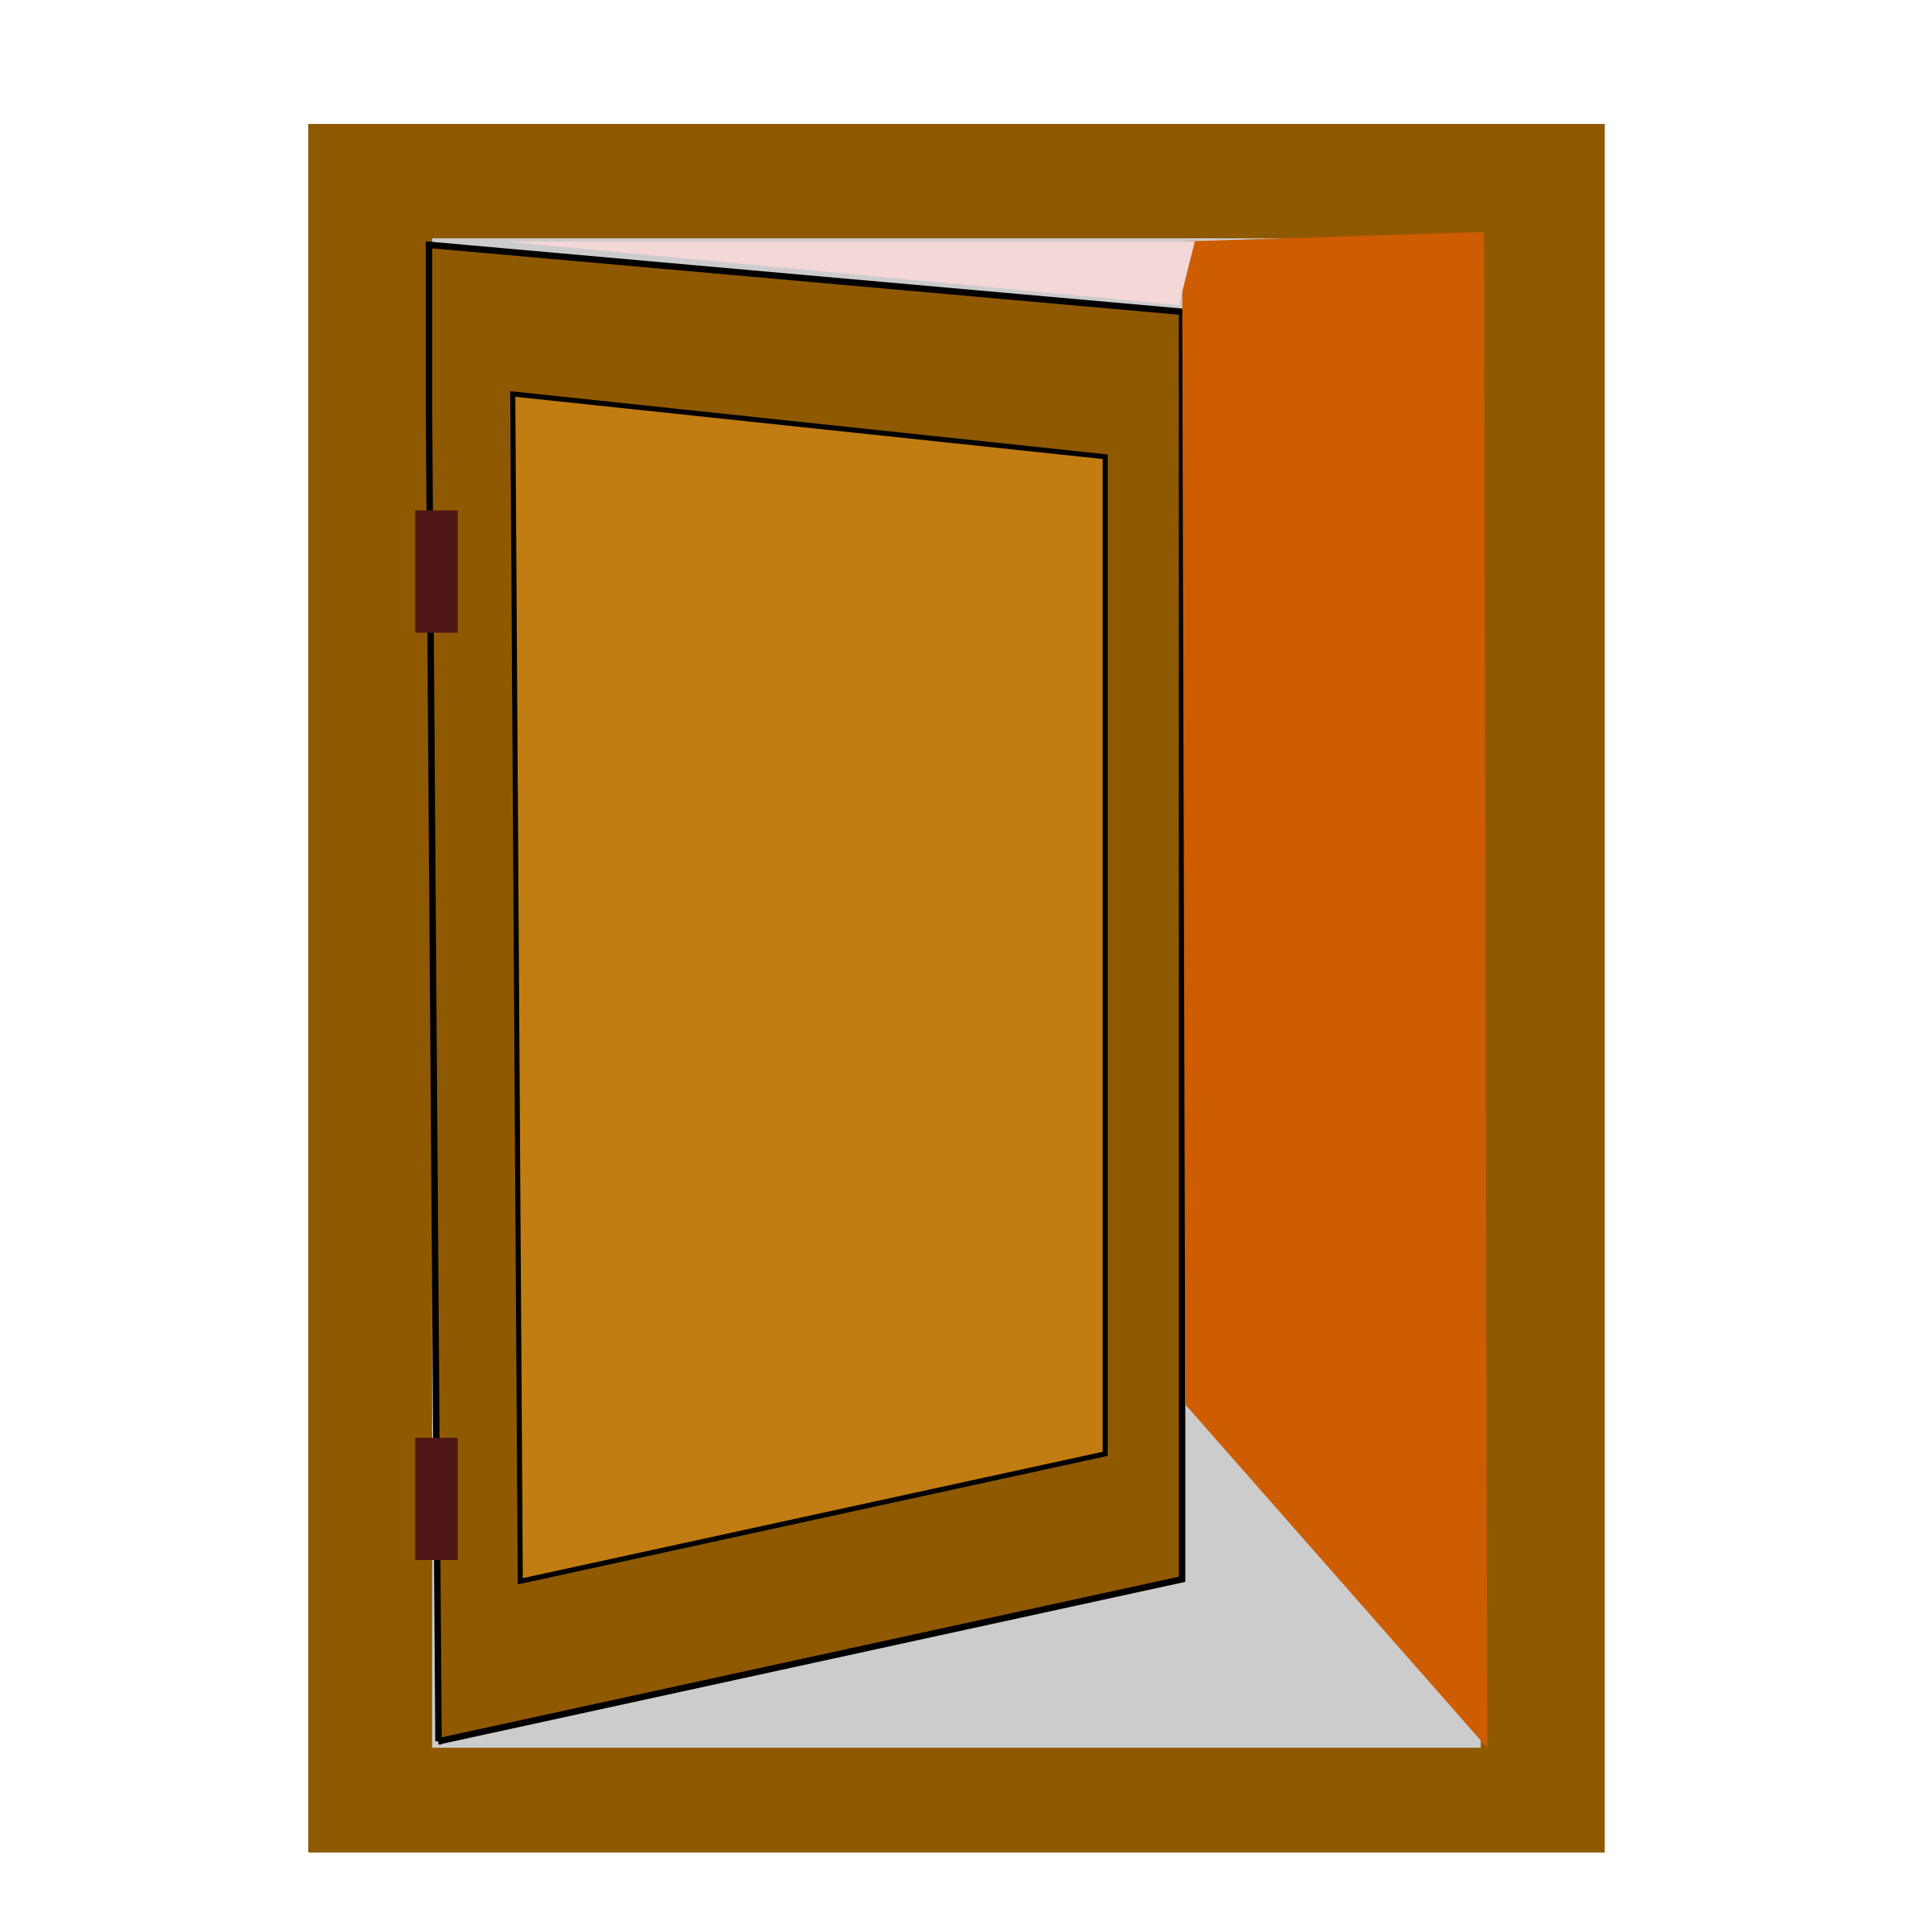 School doors clipart jpg royalty free library 28+ Collection of Door Open Clipart | High quality, free cliparts ... jpg royalty free library